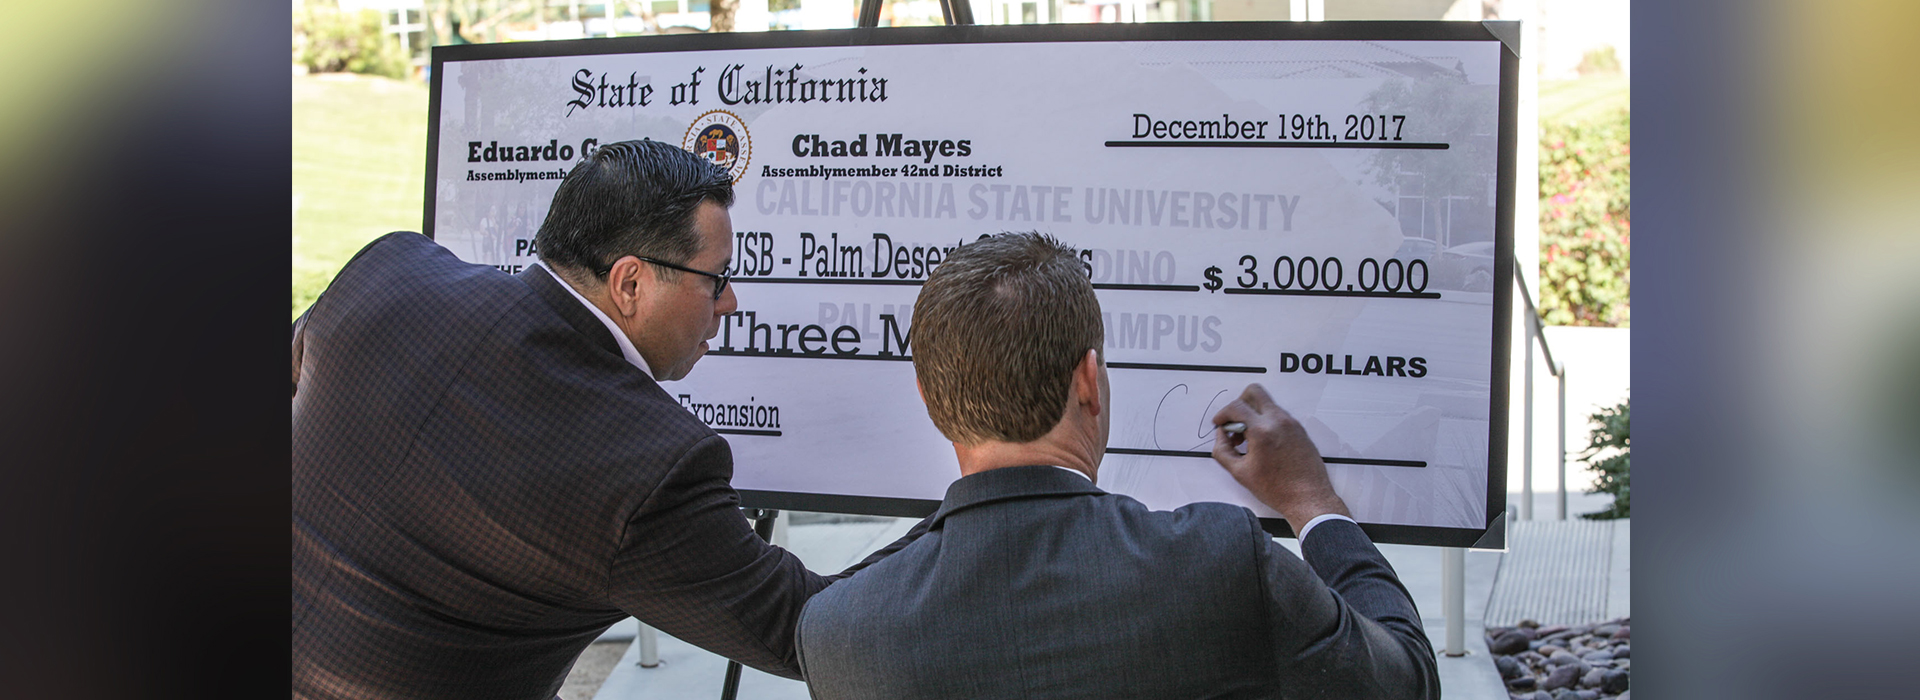 CSUSB Palm Desert Campus formally receives $3 million commitment from the state